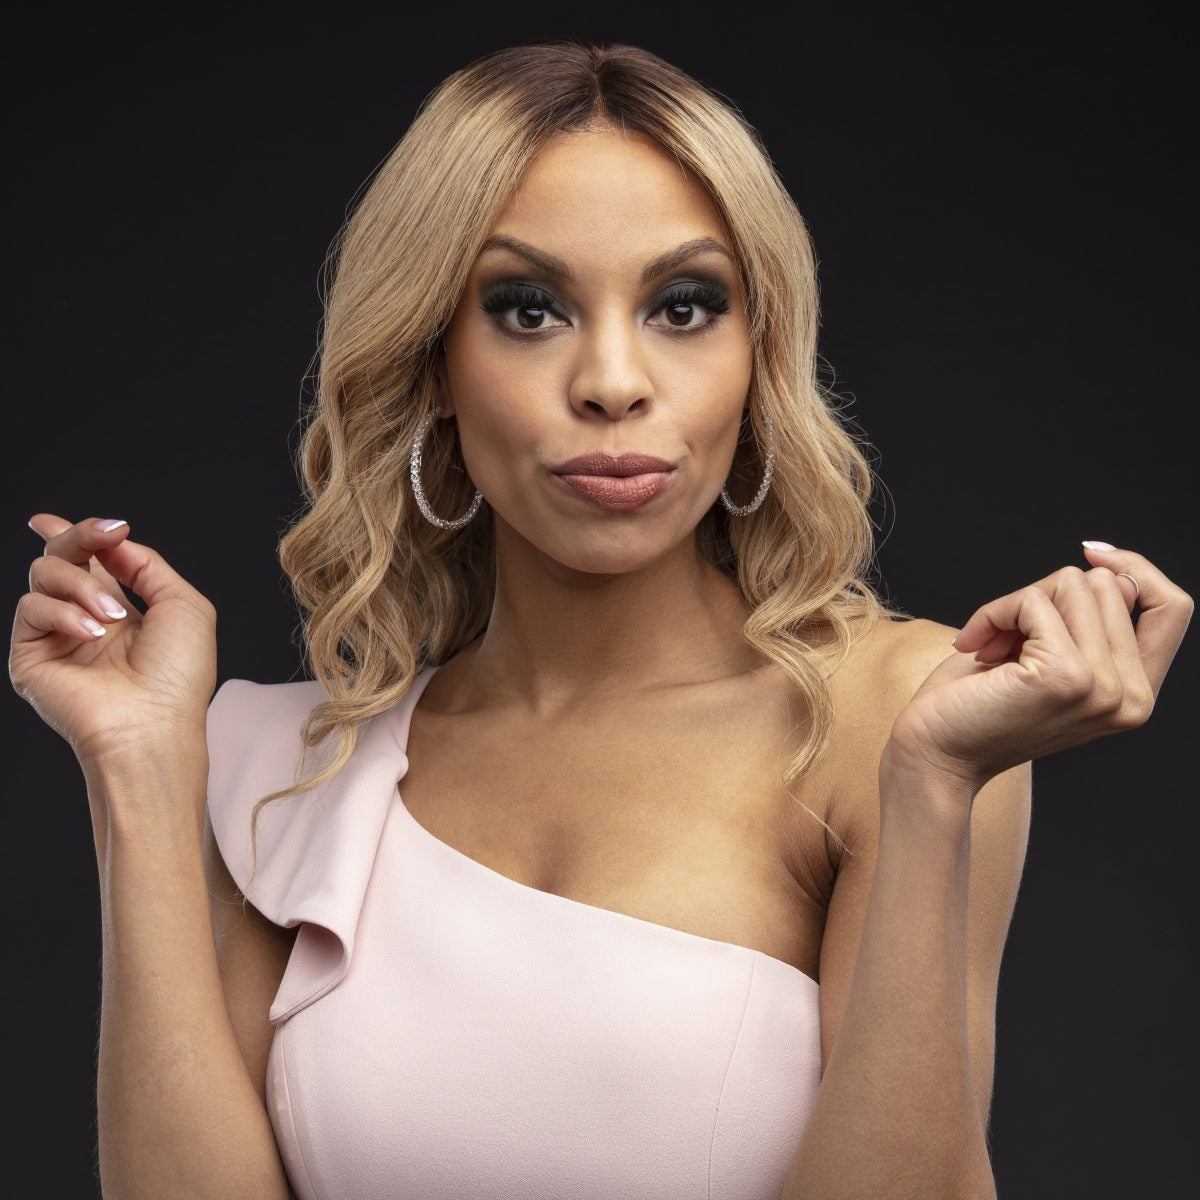 5 Things To Know About The Star Of Wendy Williams' Lifetime Movie Ciera Payton